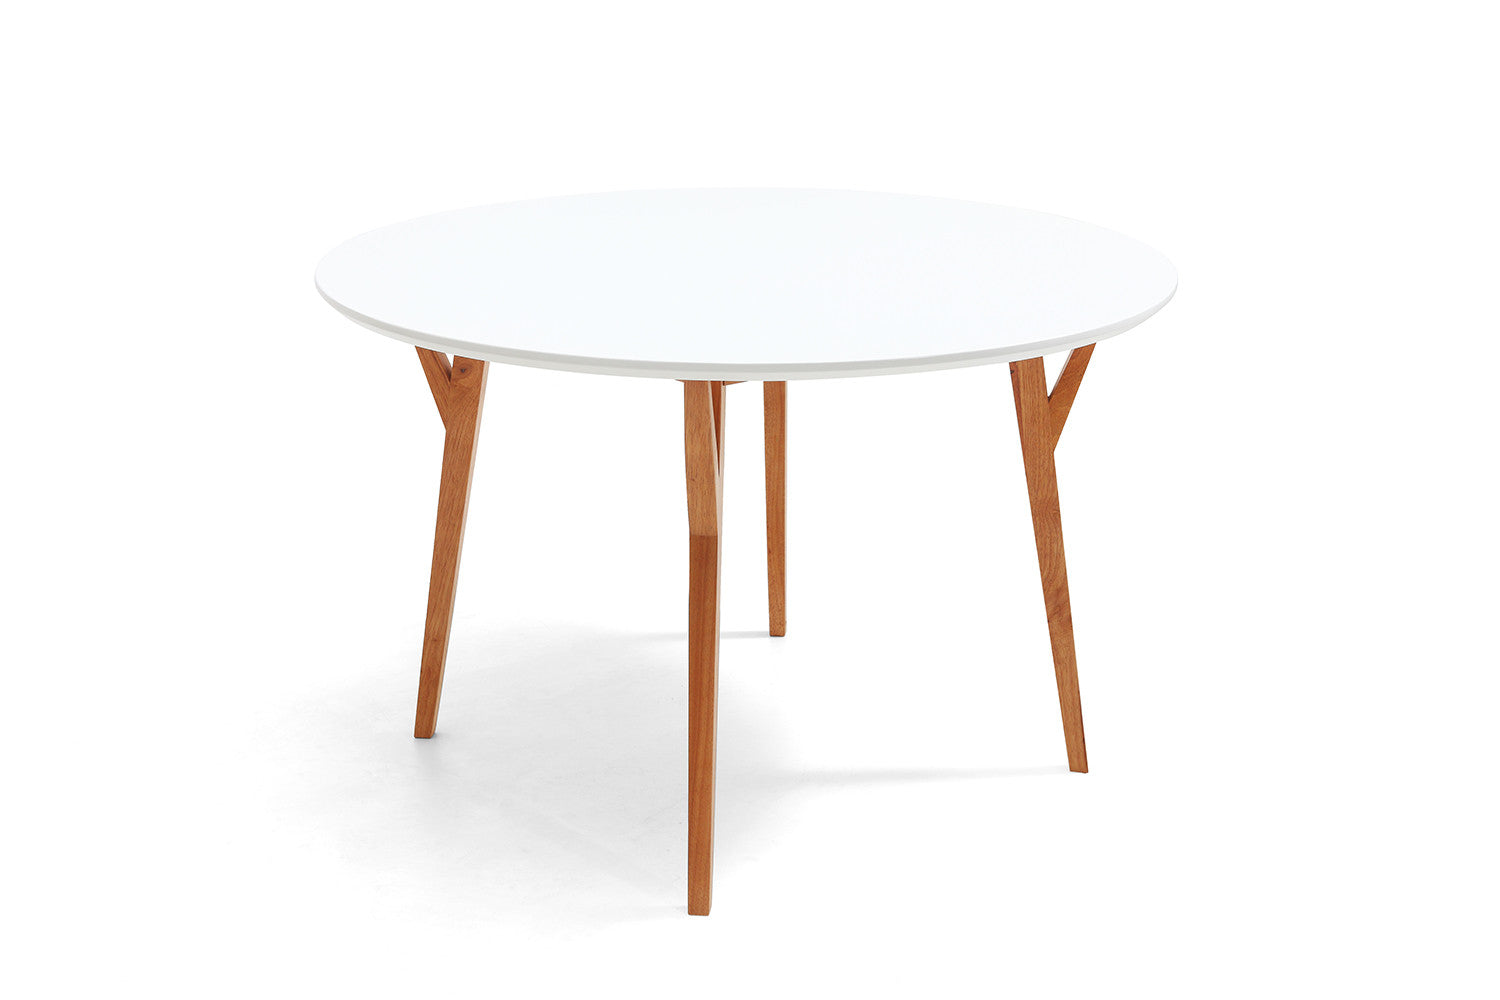 Table de salle manger ronde design scandinave moesa - Dimensions table a manger ...